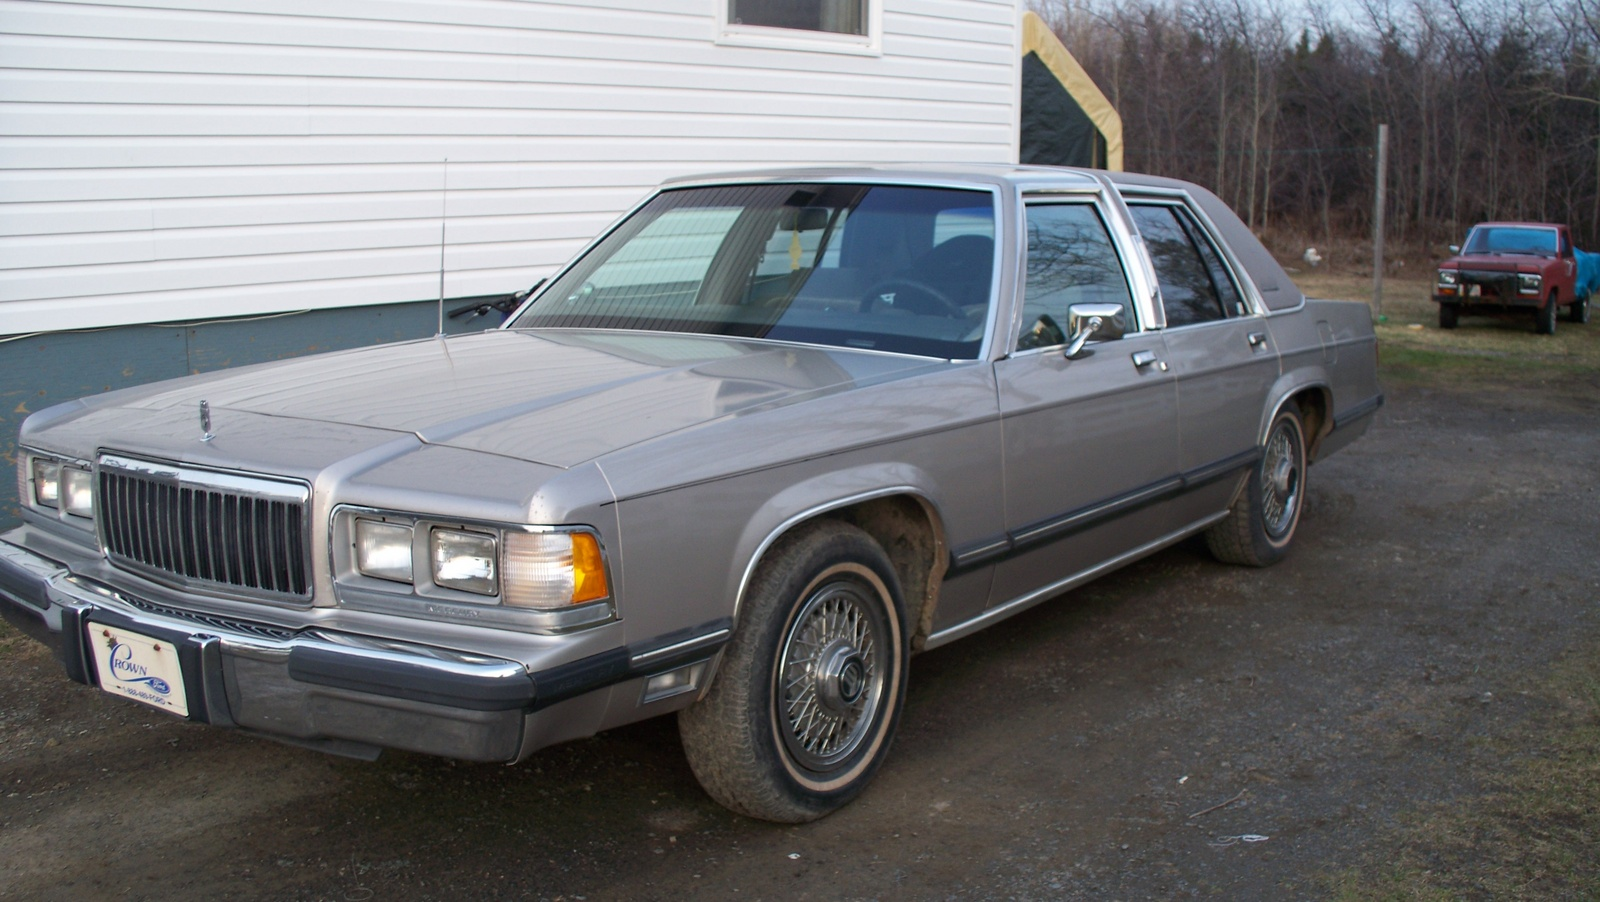 Picture of 1991 Mercury Grand Marquis 4 Dr LS Sedan